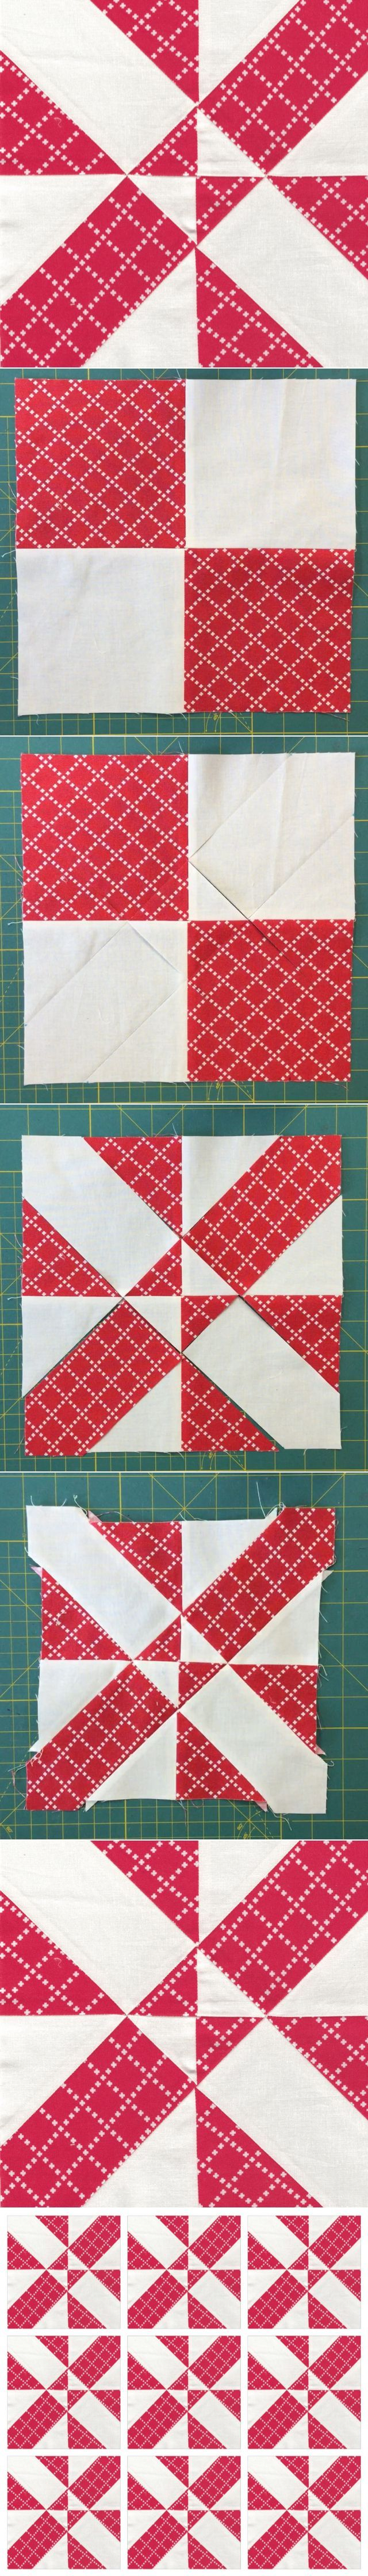 783 best images about Quilting on Pinterest